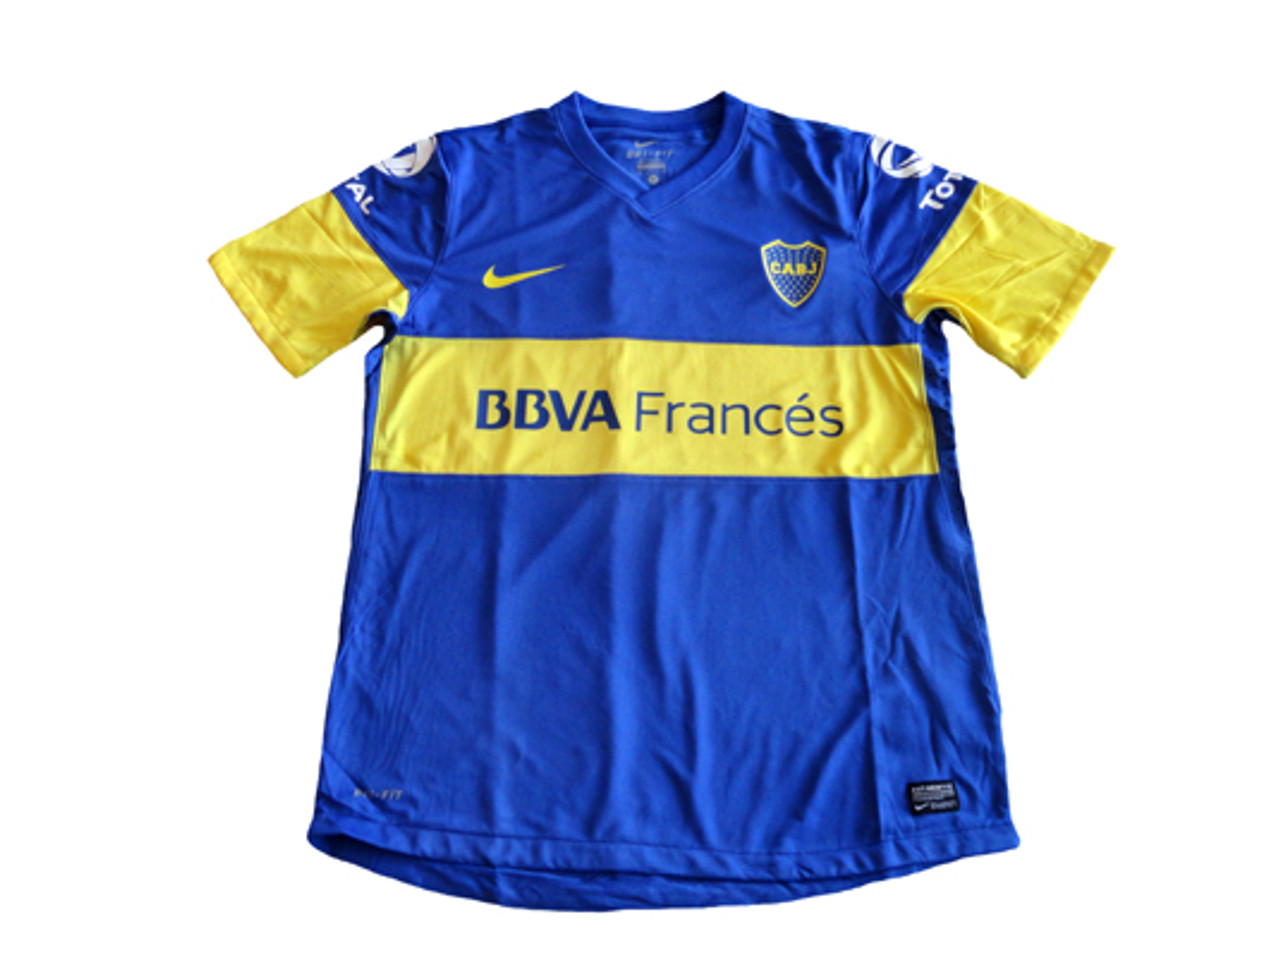 964f67dfab9 NIKE BOCA JUNIORS 2012 AUTHENTIC HOME JERSEY - Soccer Plus